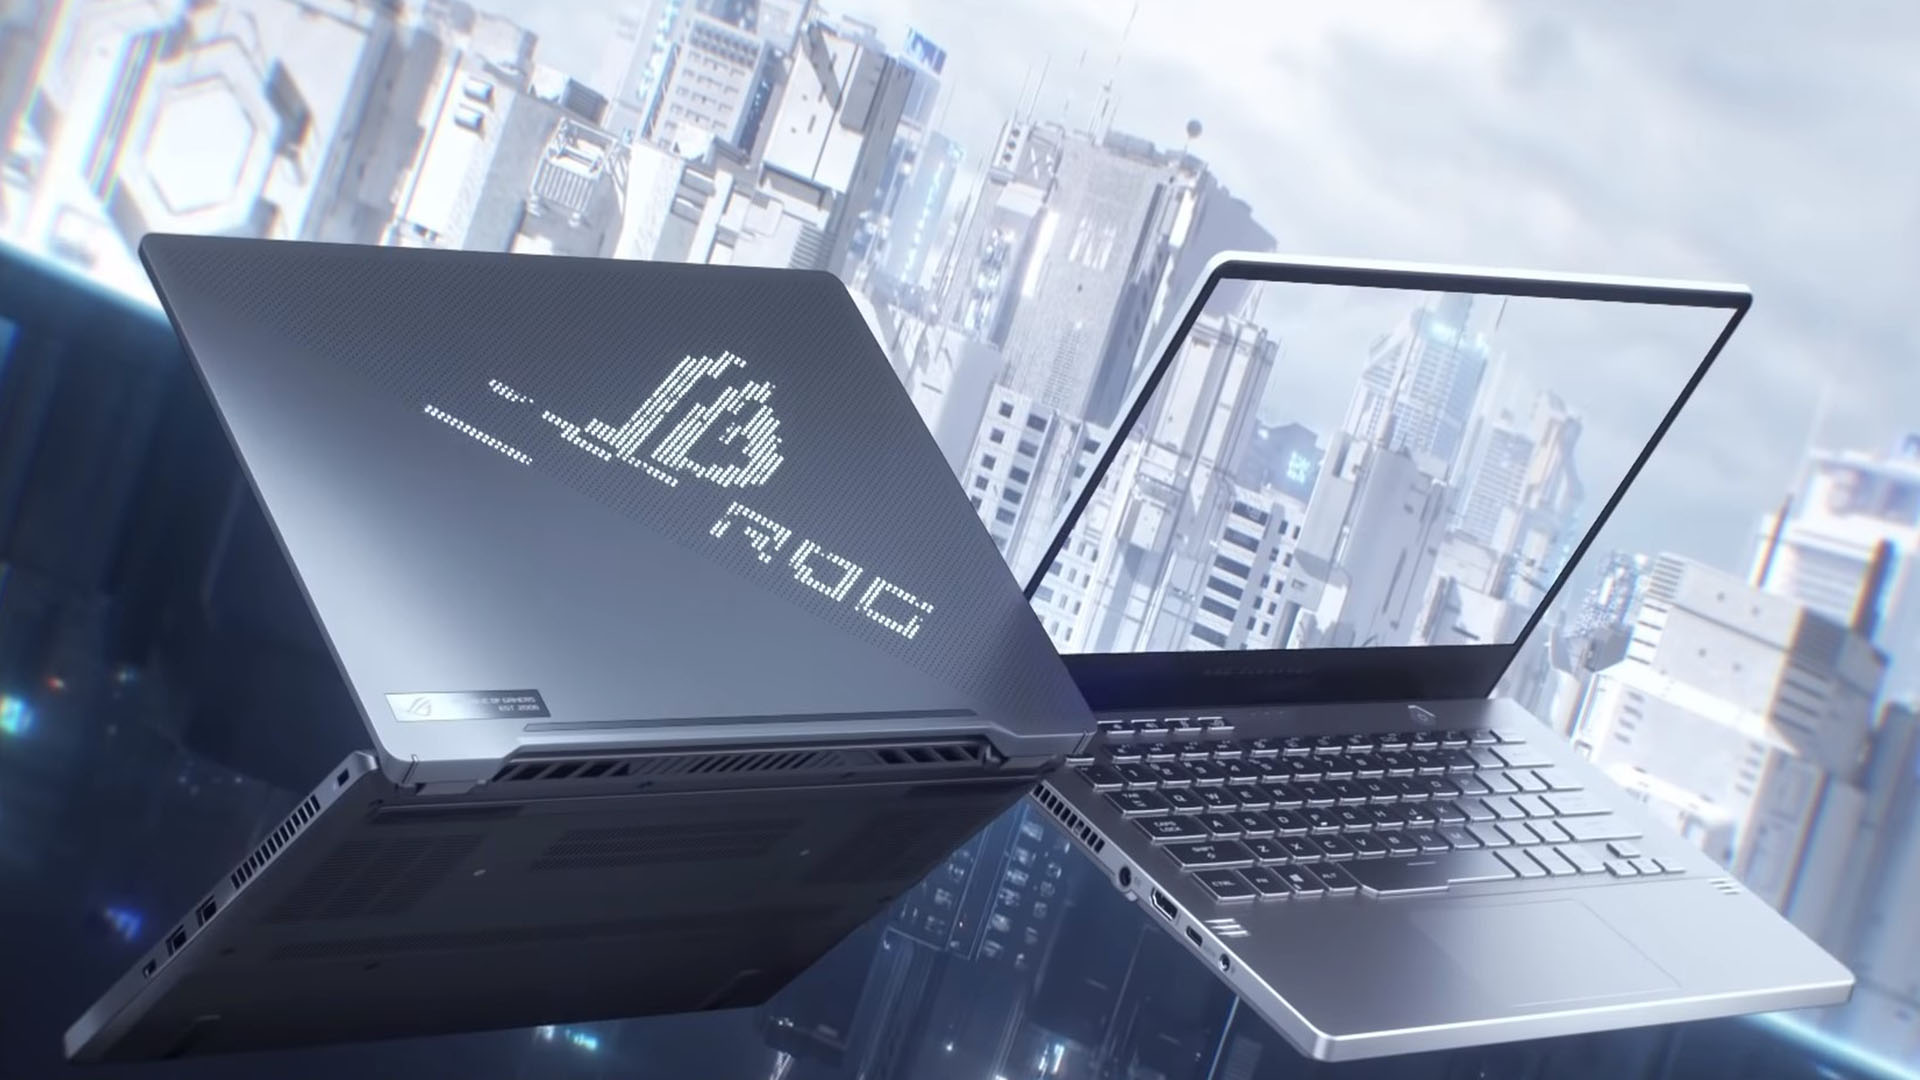 View of Asus' new ROG Zephyrus G14 14 inch gaming laptops